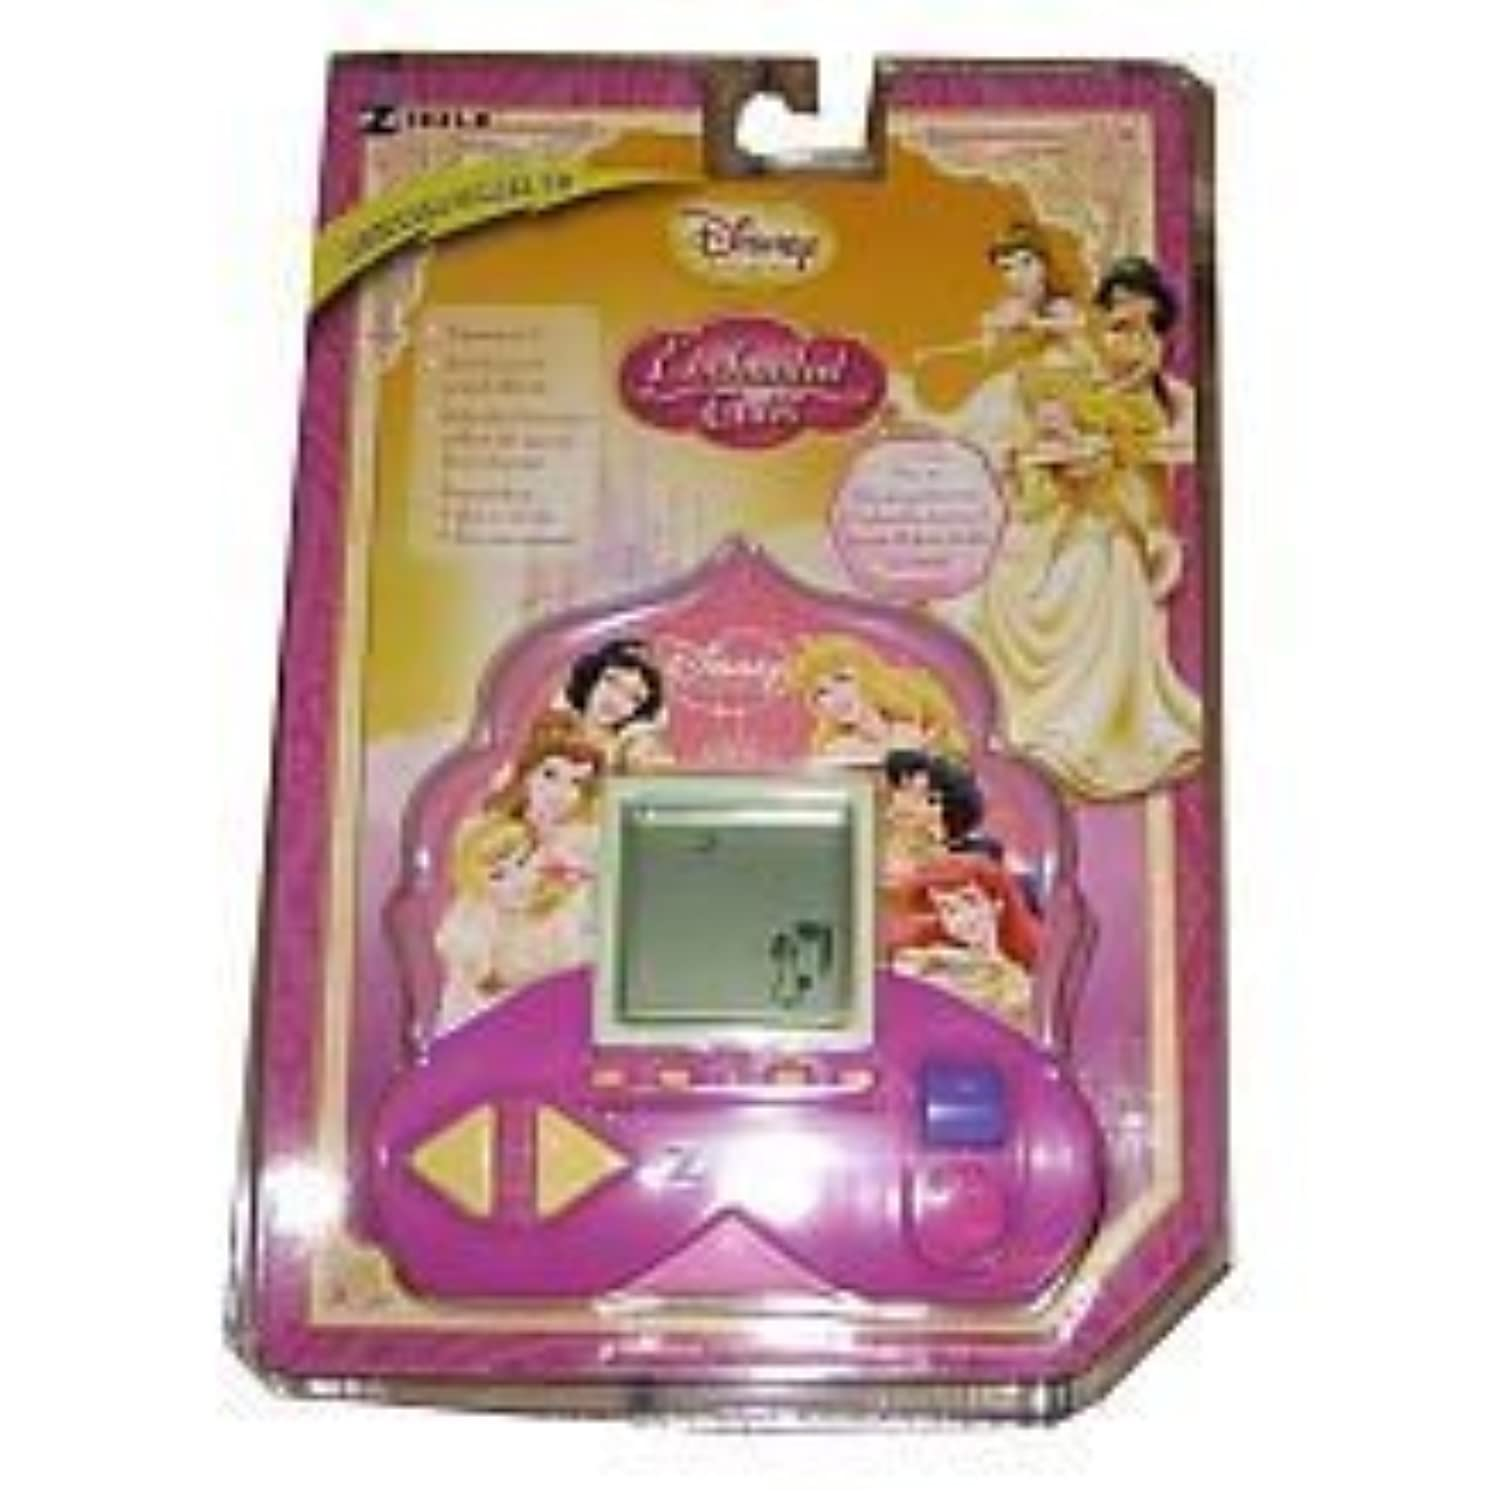 Disney Princess Electronic Handheld Game - Enchanted Tales [並行輸入品]